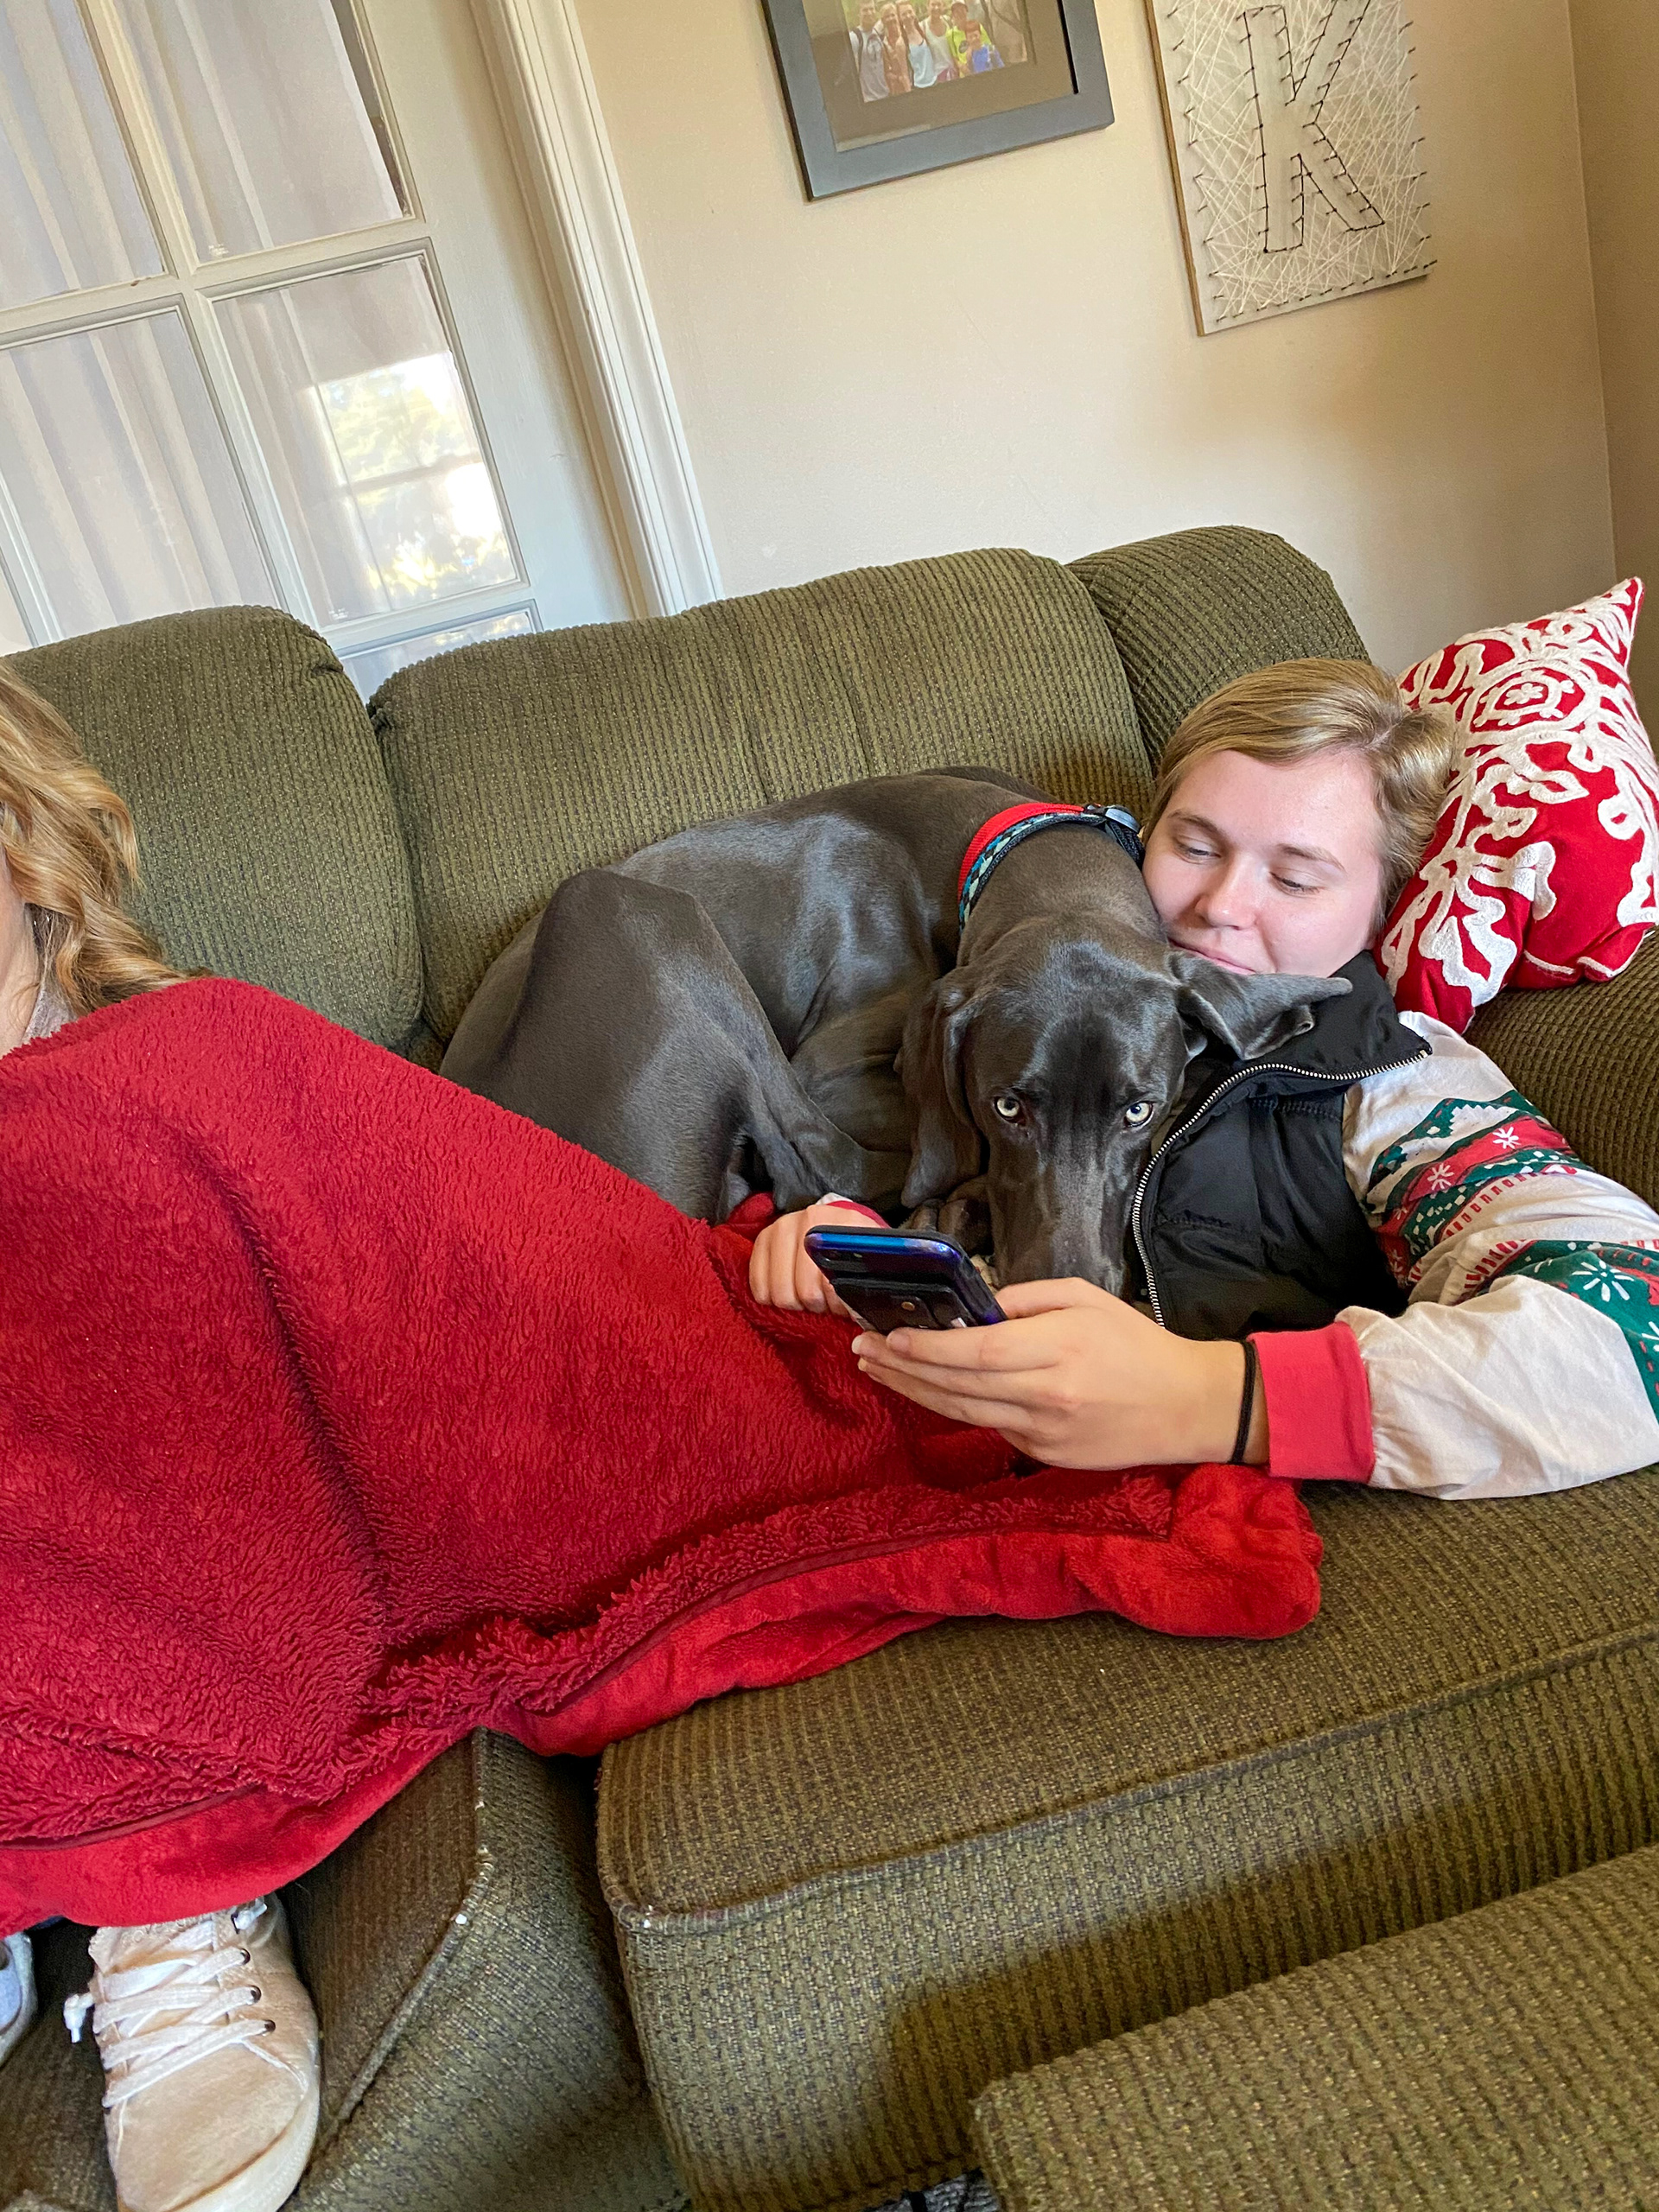 Maggie Kaliszak and dog Guinness lounging on the couch on March 26th, 2020. Maggie Kaliszak  |  New Freedom, Pennsylvania.